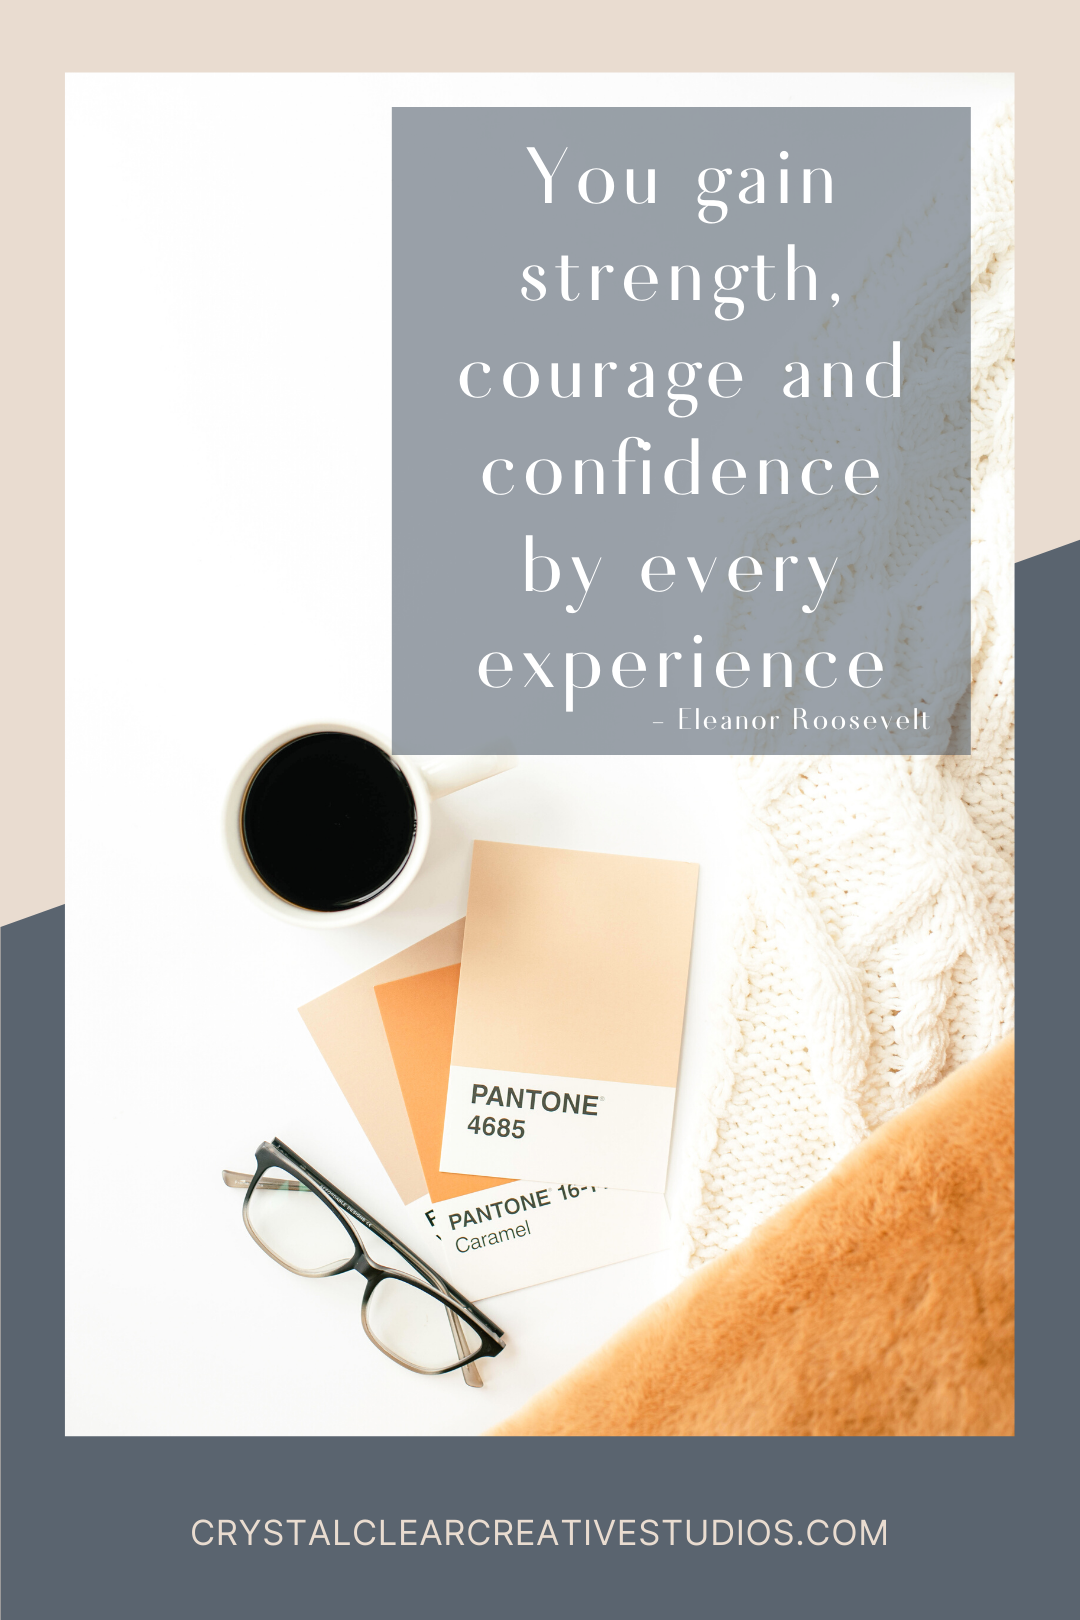 You gain strength, courage, and confidence by every experience.